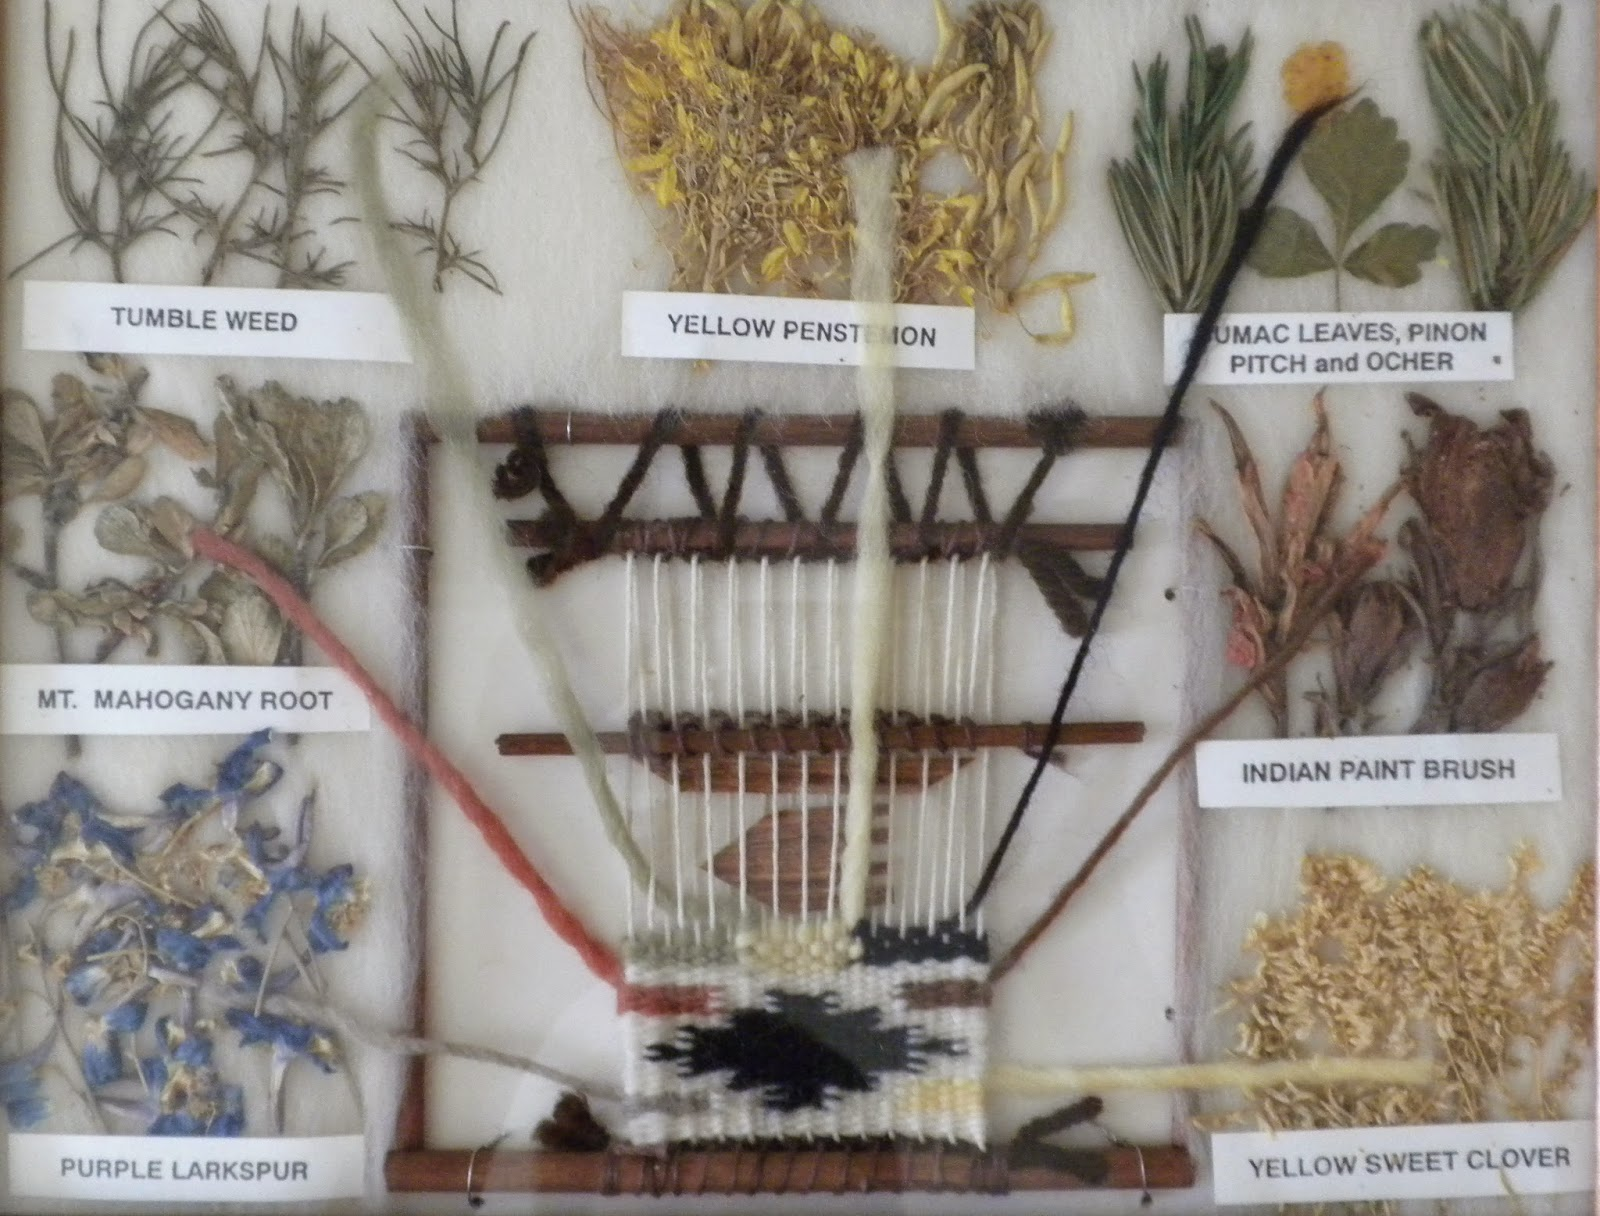 panoply garden plants and native american textiles